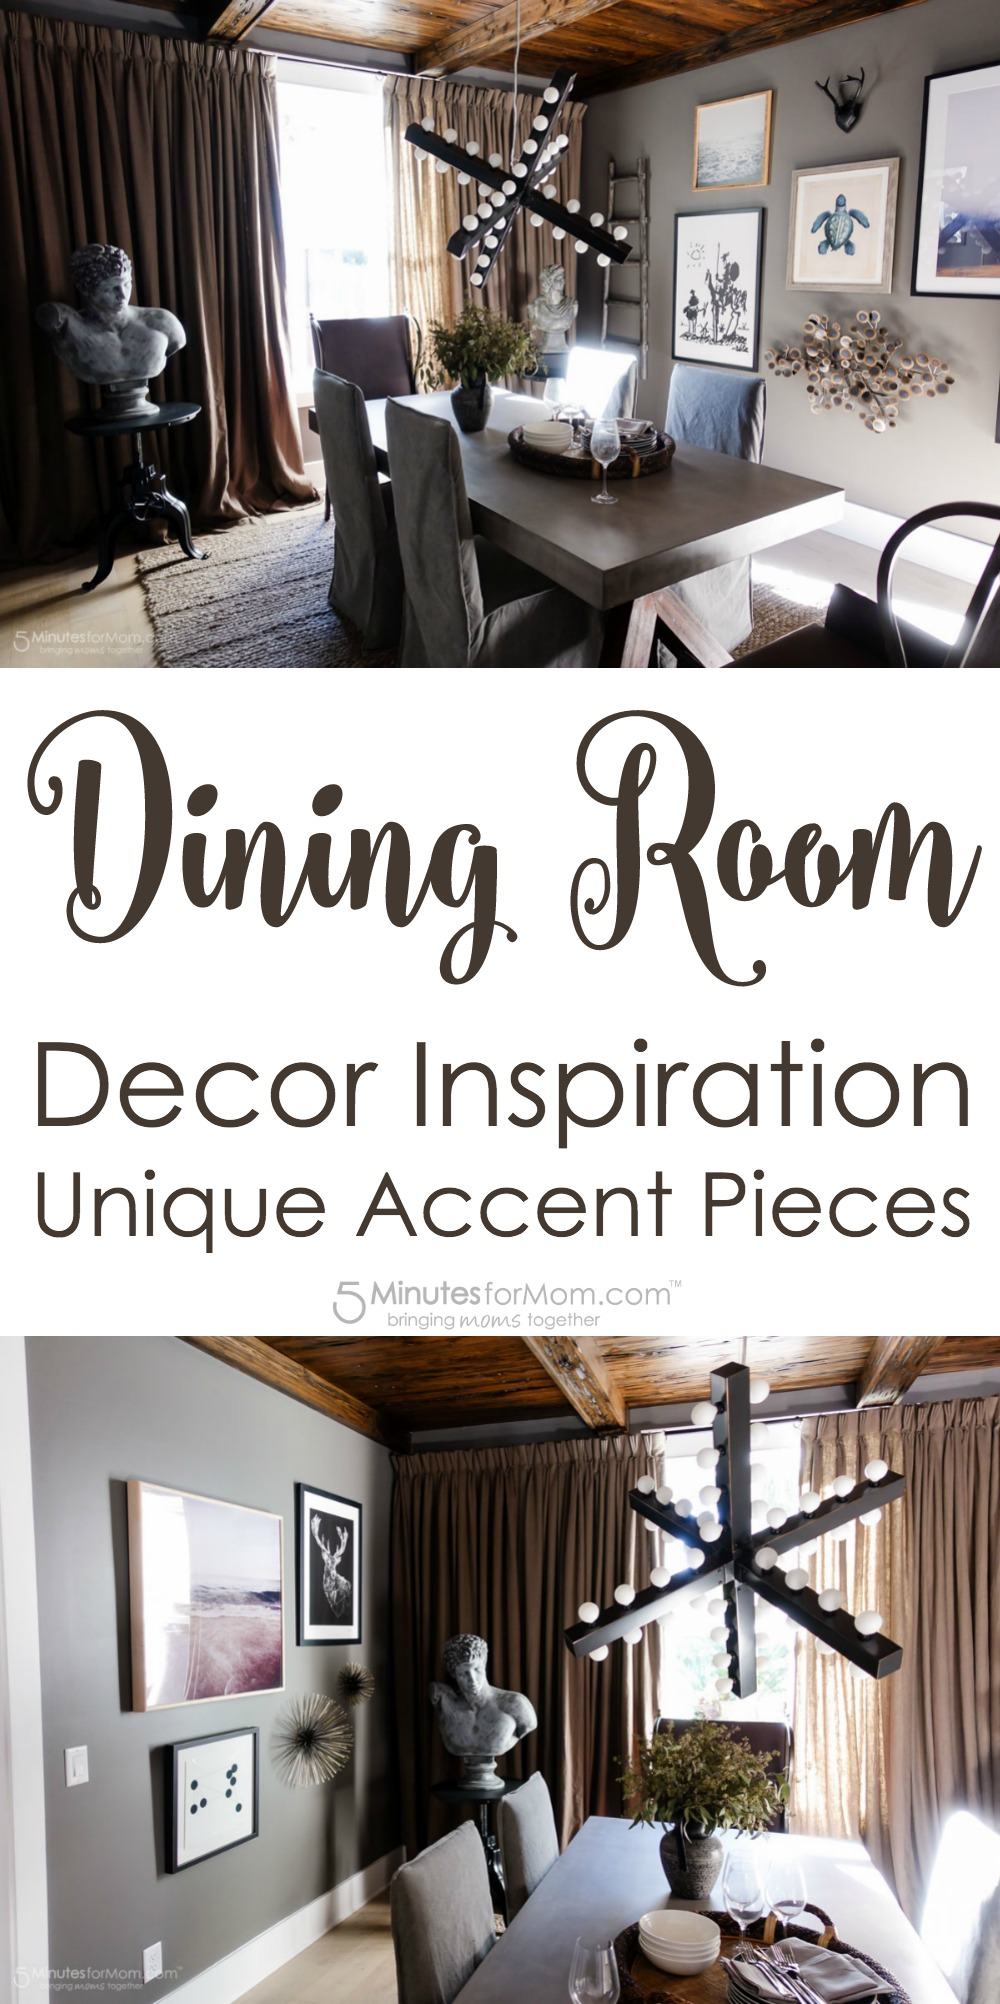 dining room decor inspiration unique accent pieces minutes for mom table outdoor lounge furniture storage target shoe pottery barn folding wood patio end full wall mirrors small